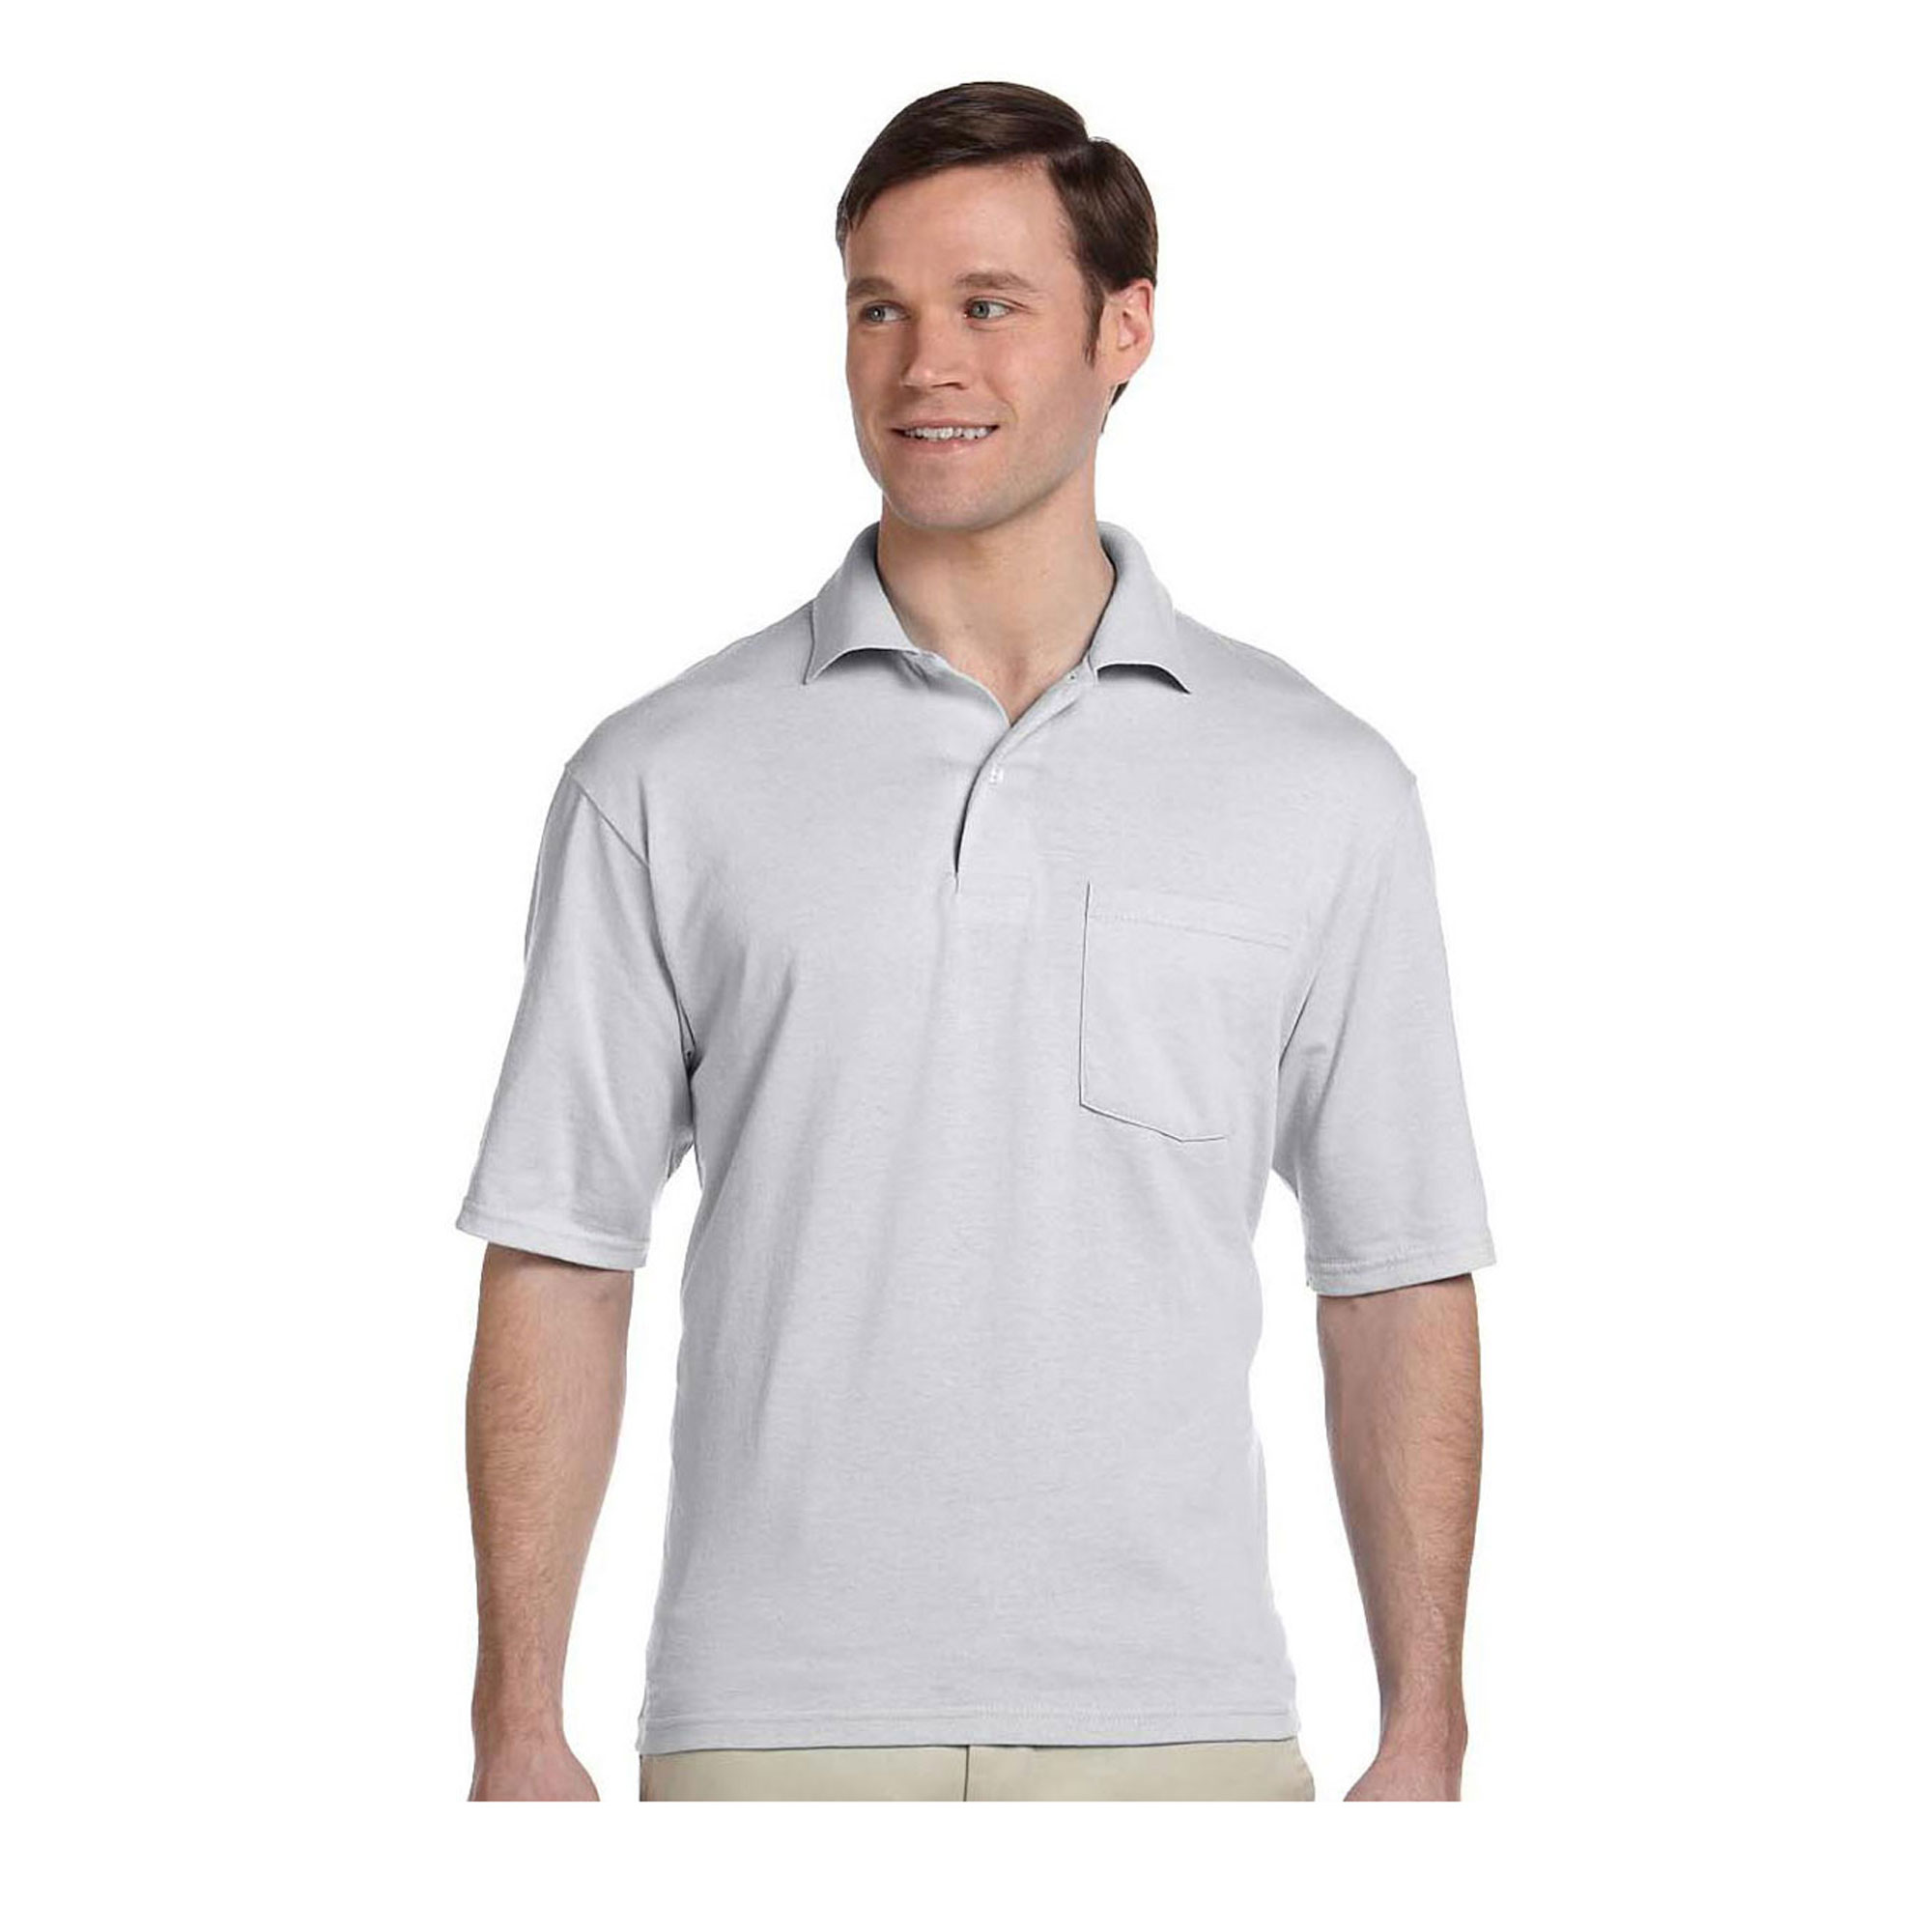 JERZEES - Jerzees Men's Five Point Left Chest Pocket Polo Shirt